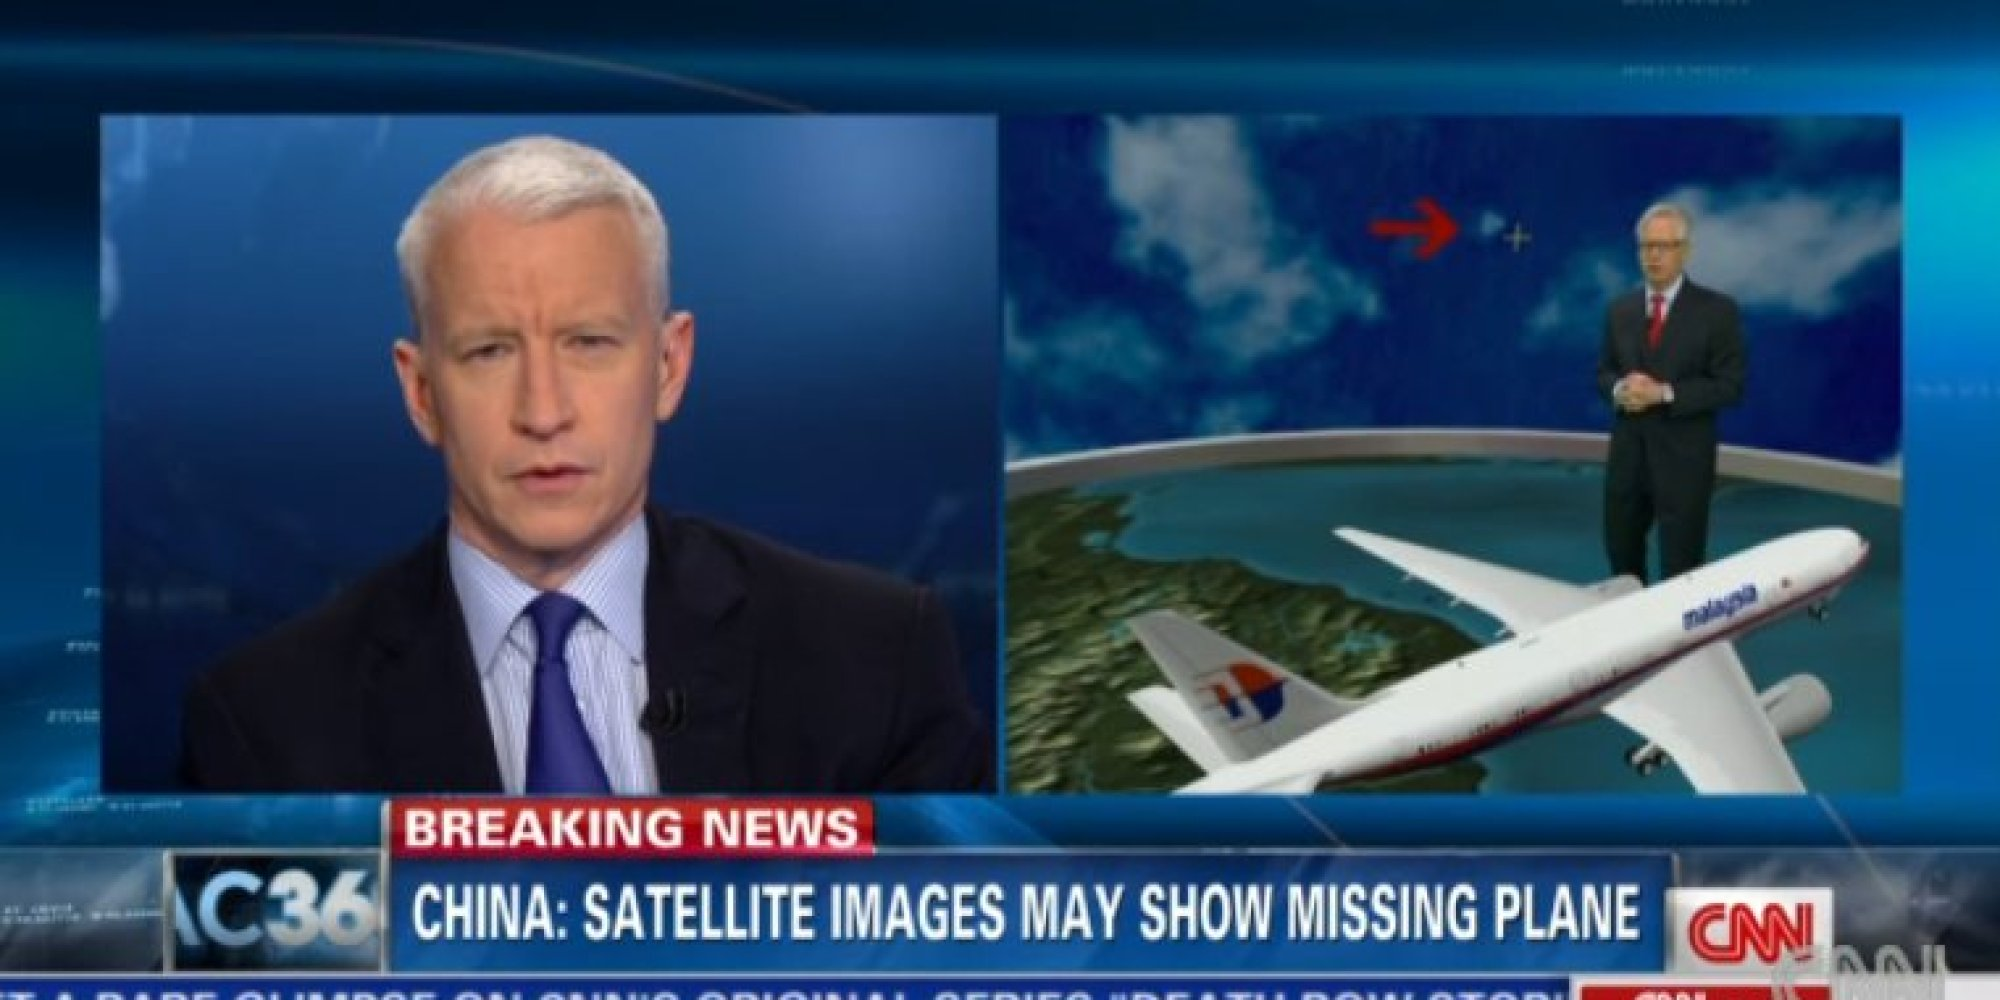 CNN World News Picture: CNN On The Defensive About Malaysia Flight Coverage